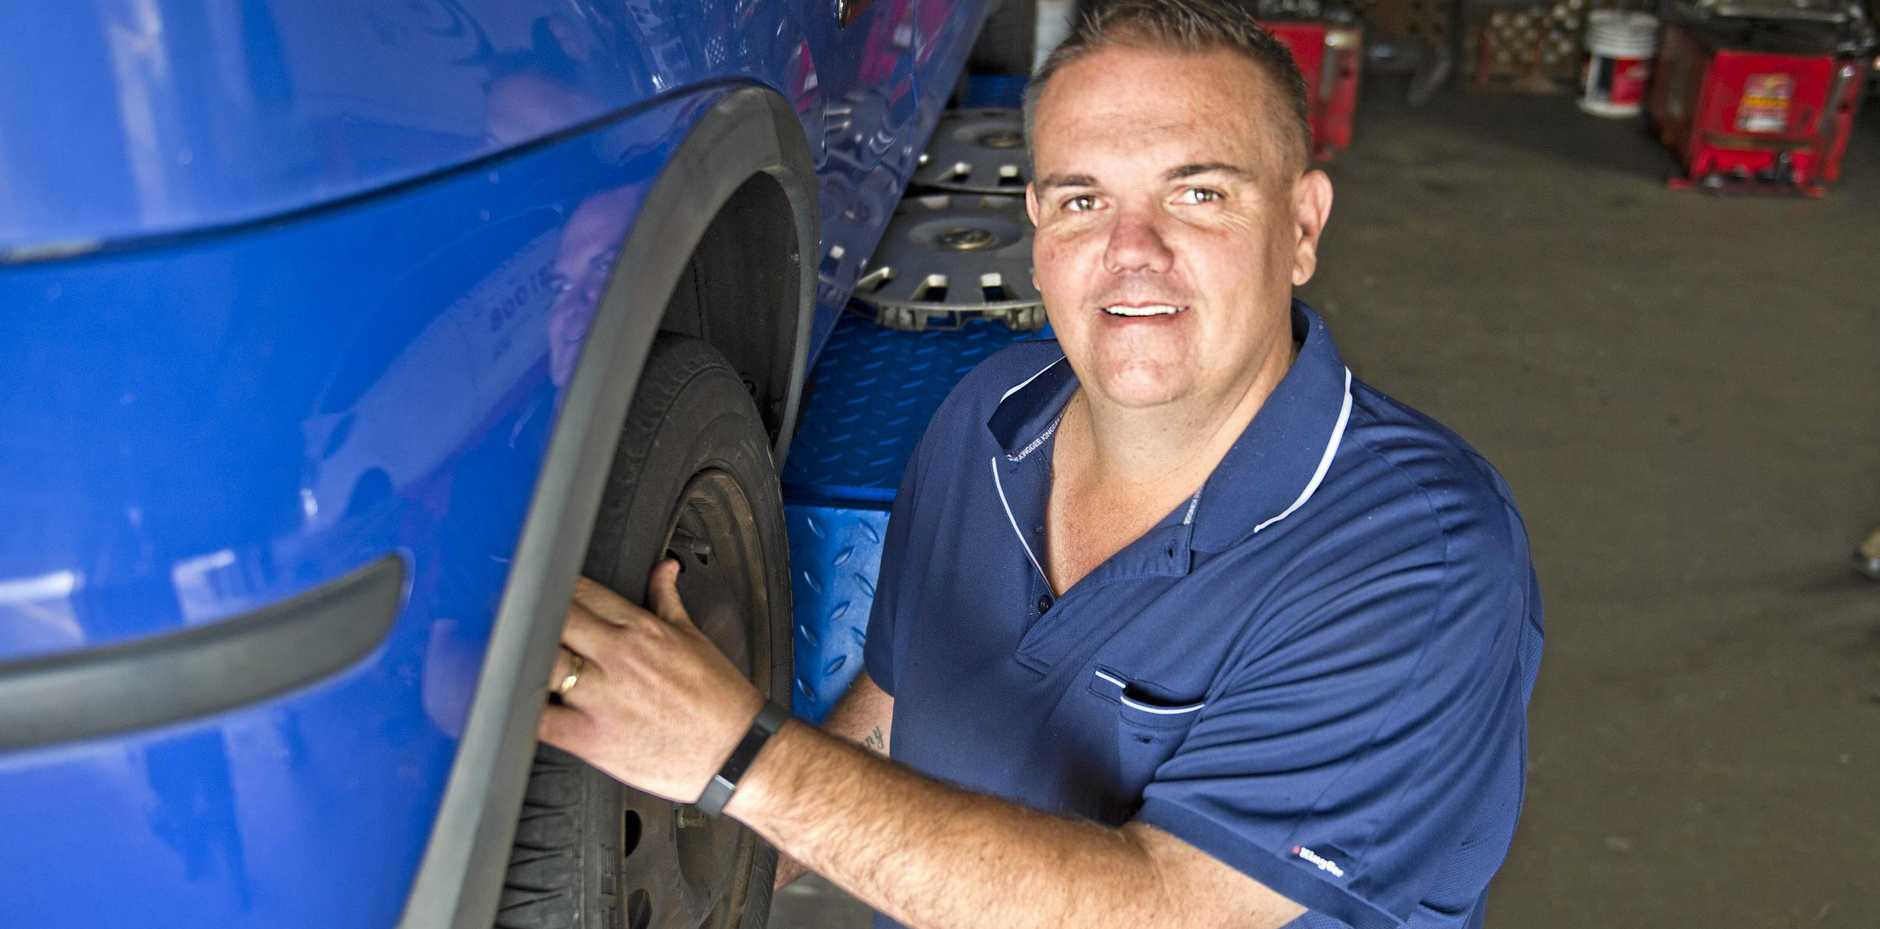 Chris Liebke is offering a new maintenance warranty deal at Liebke Tyres. Wednesday, 26th Sep, 2018.